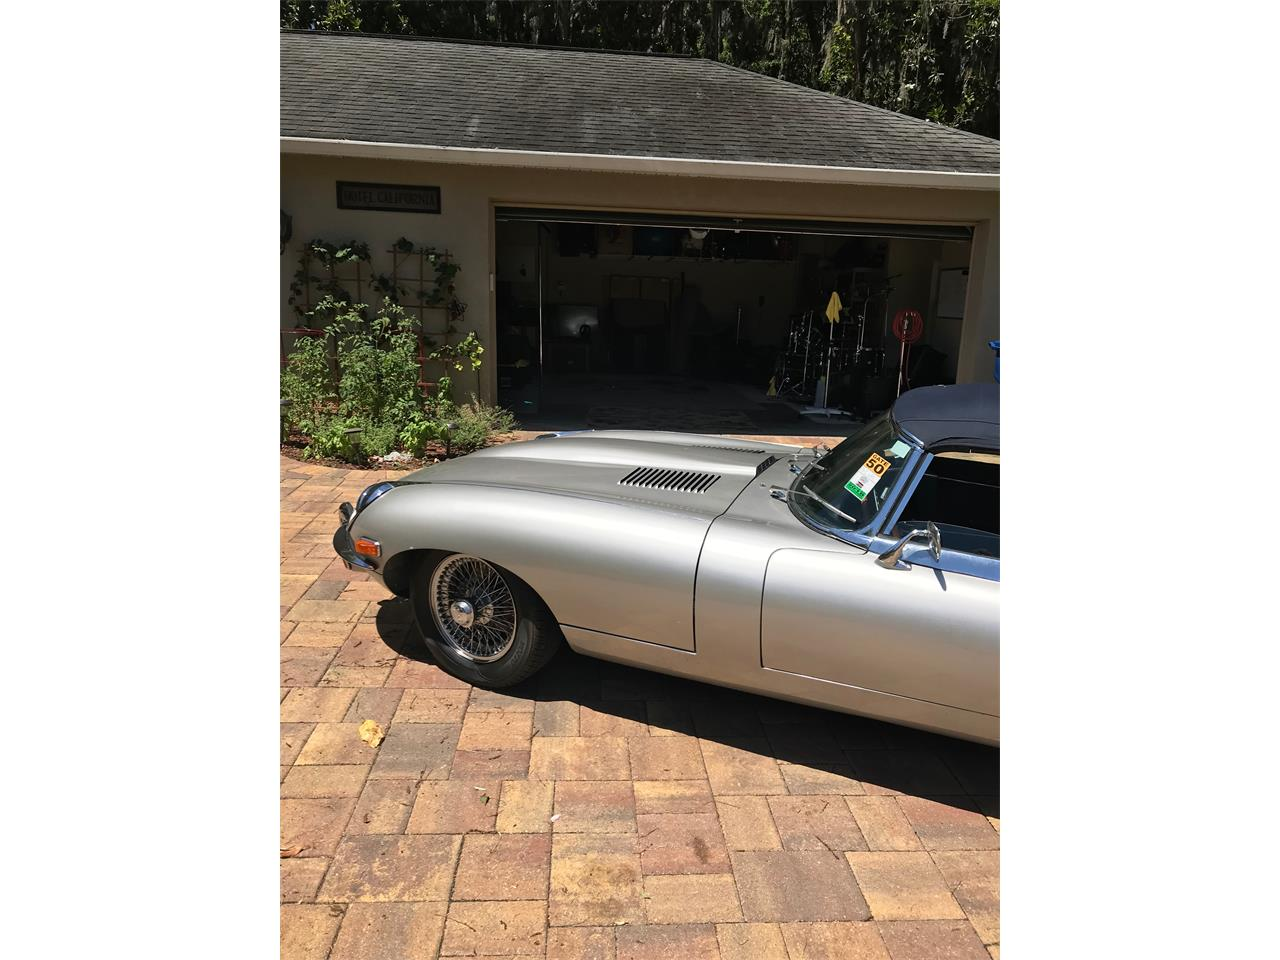 Large Picture of 1970 Jaguar XKE II located in Land O Lakes Florida - $87,500.00 Offered by a Private Seller - PZ0B